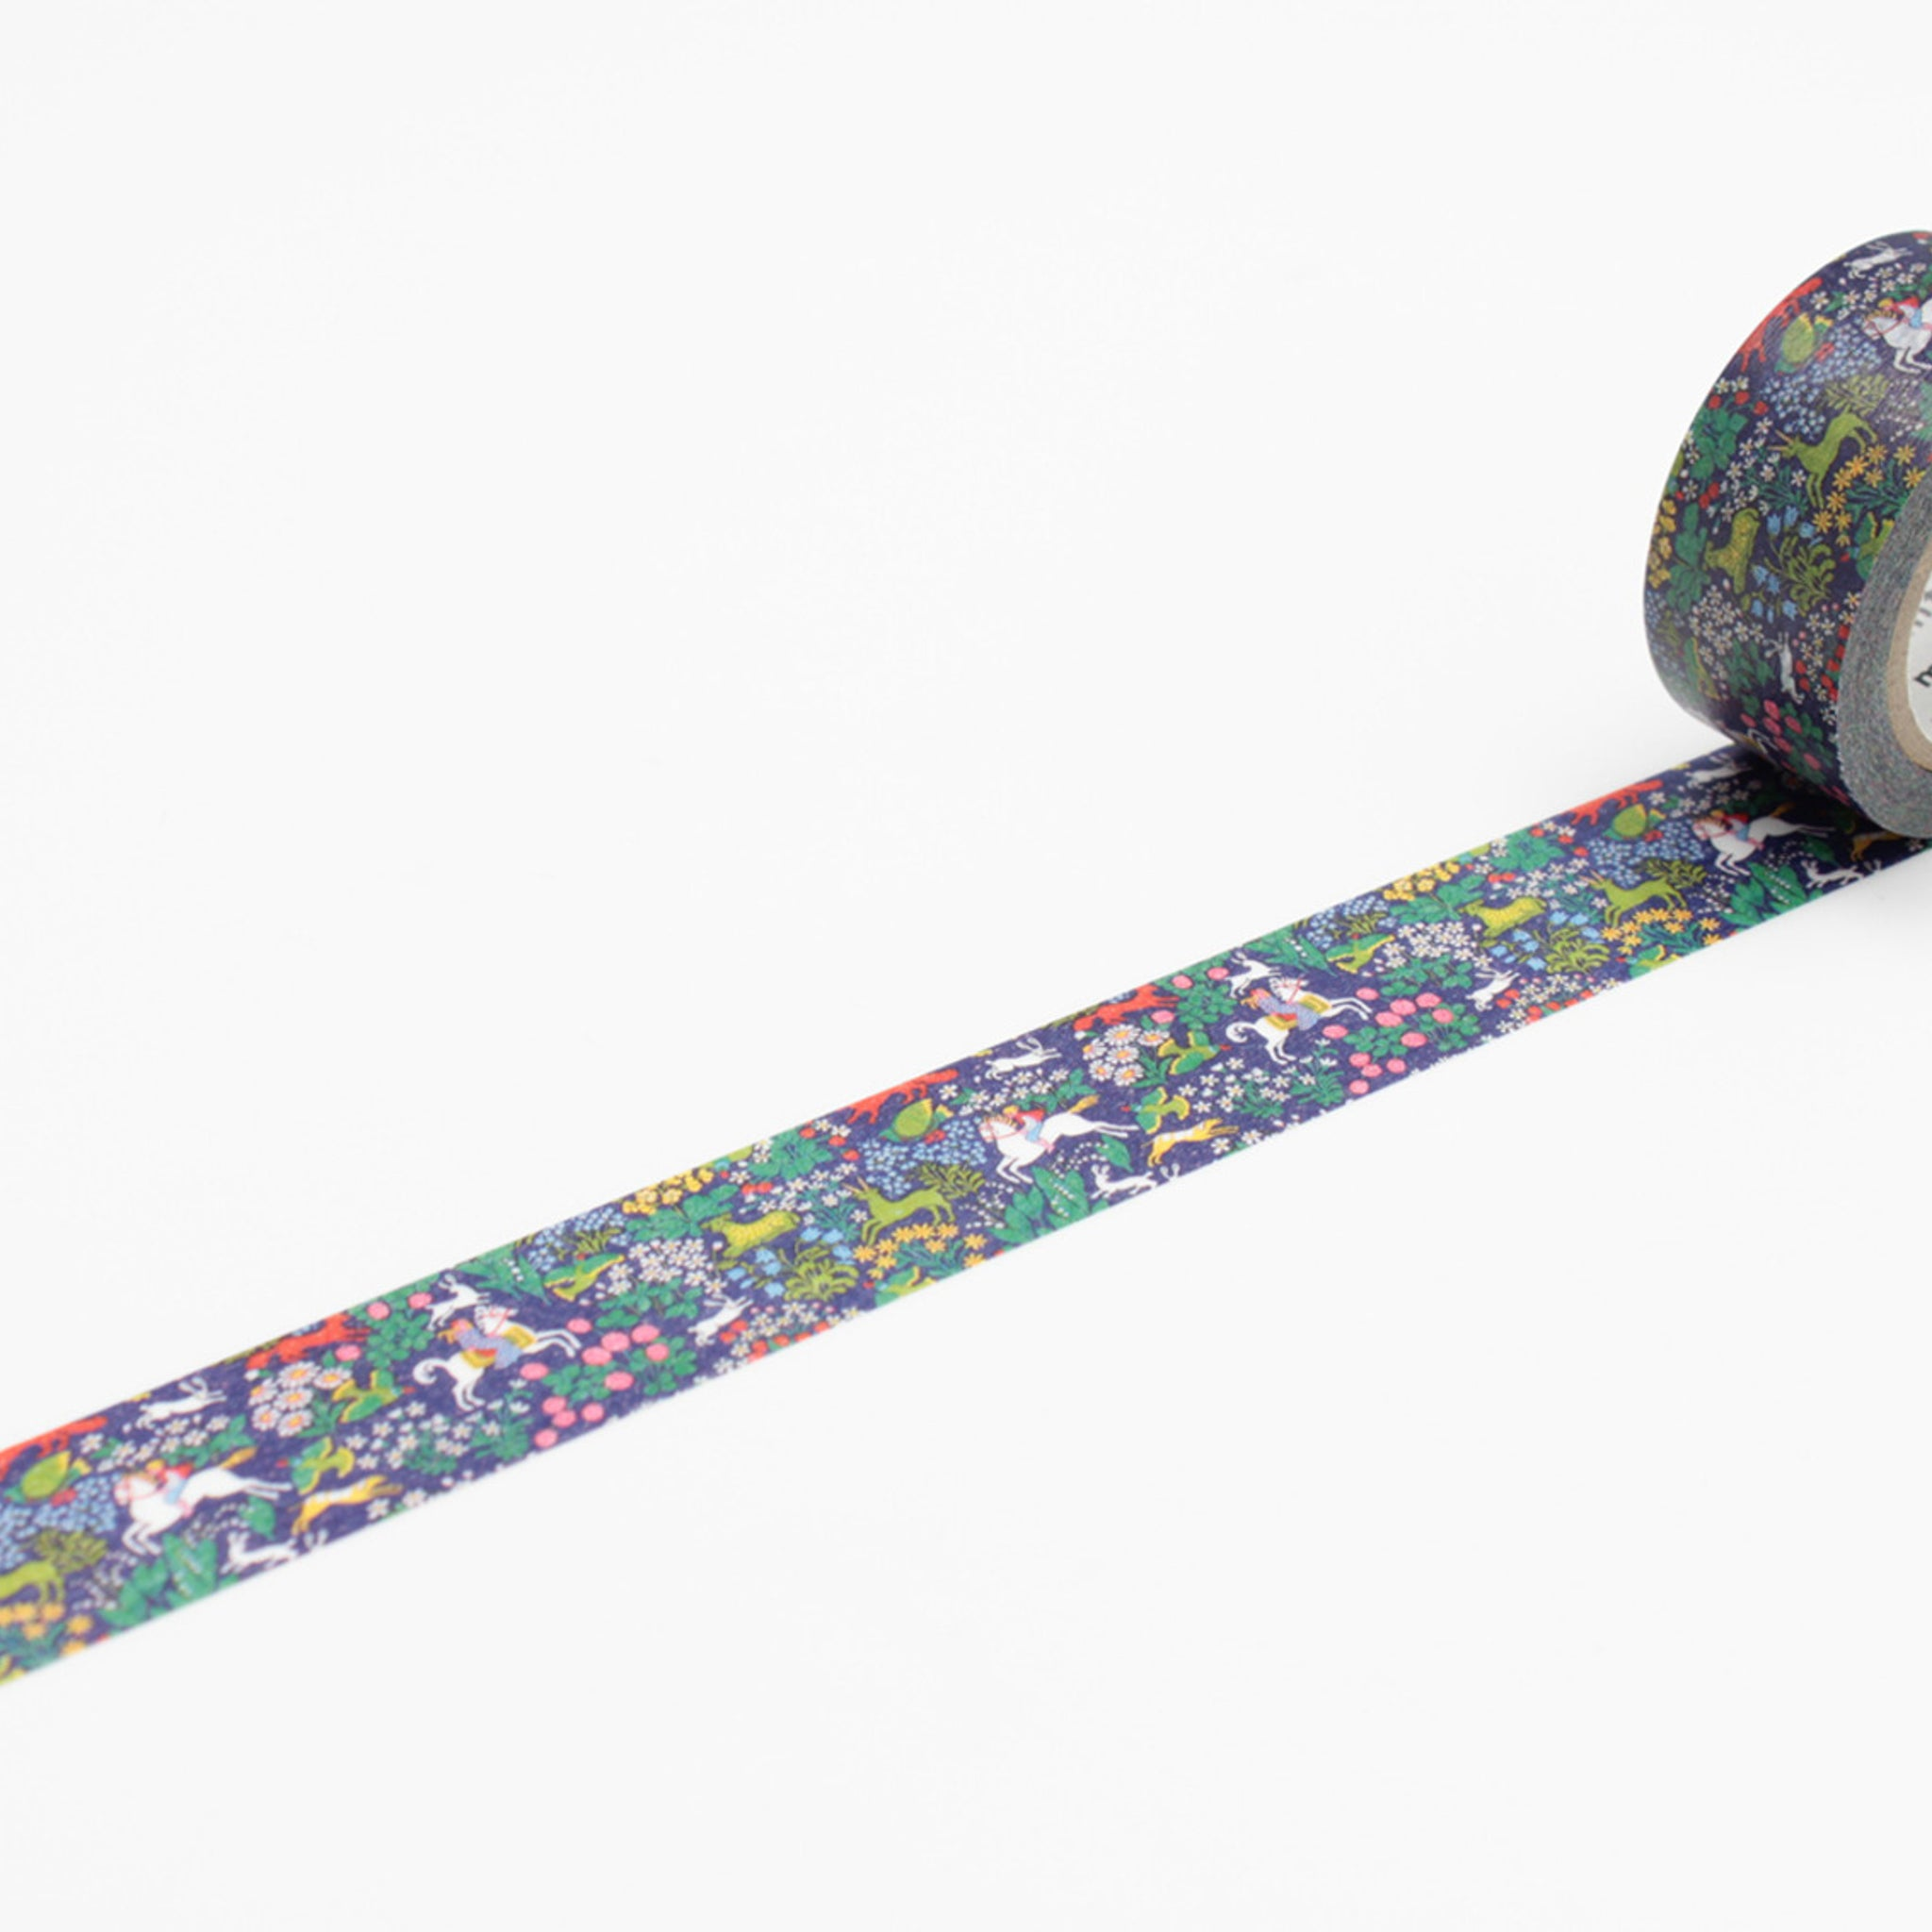 (DC) MT x Almedahls Washi Tape Jakten_Tape